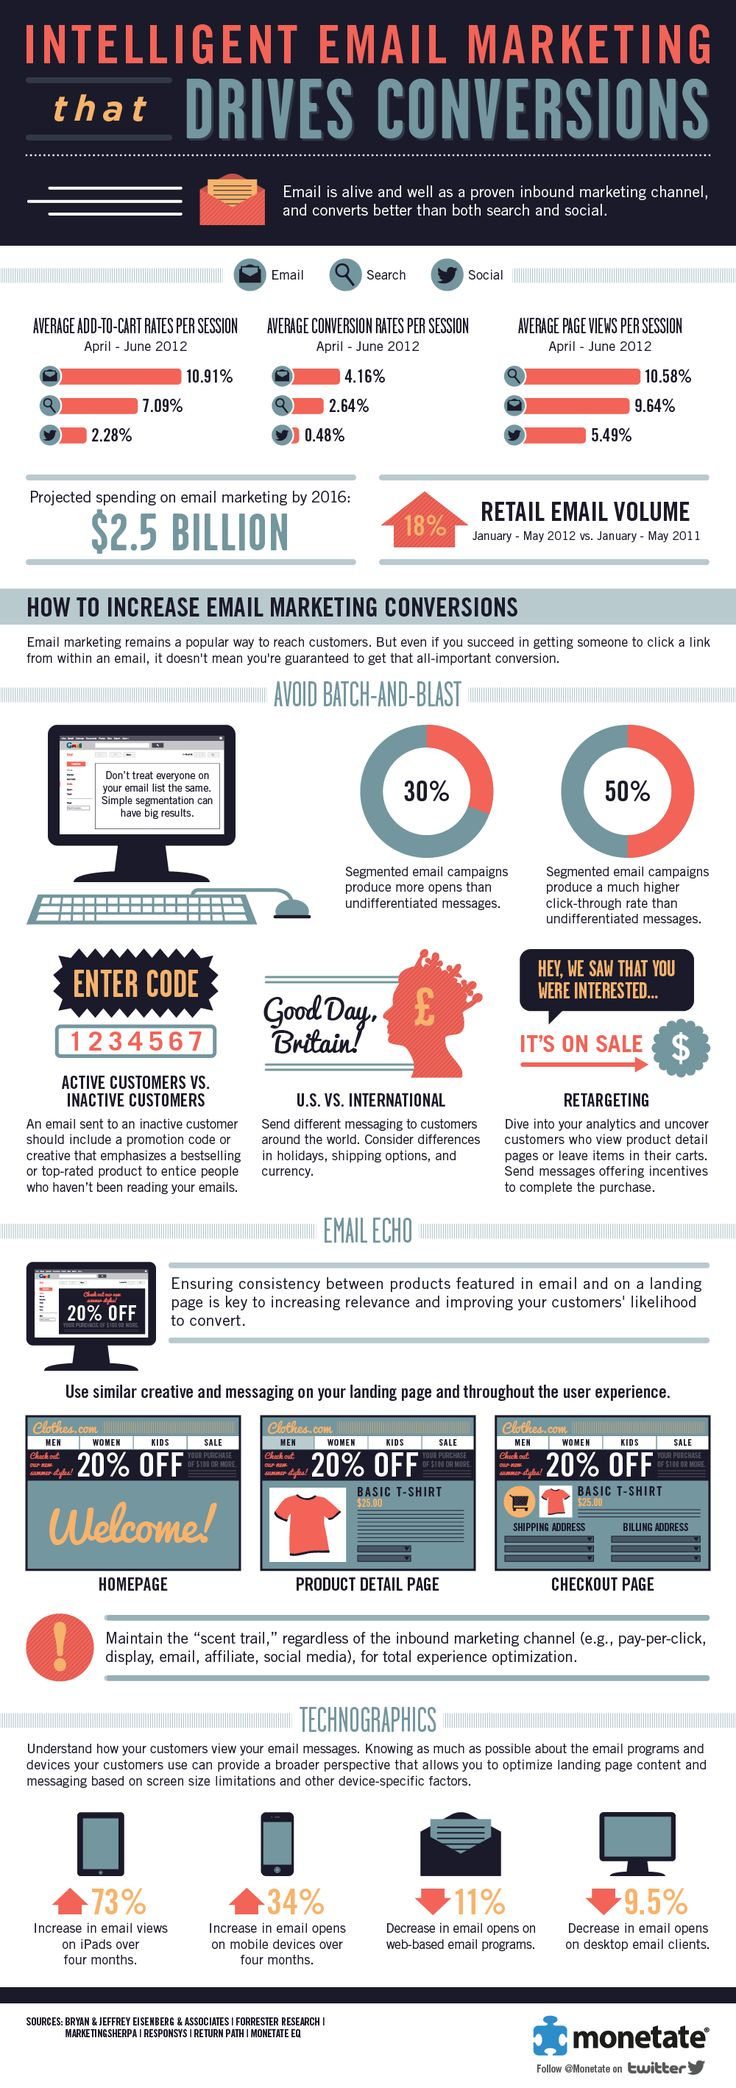 email-marketing-infographic.jpg